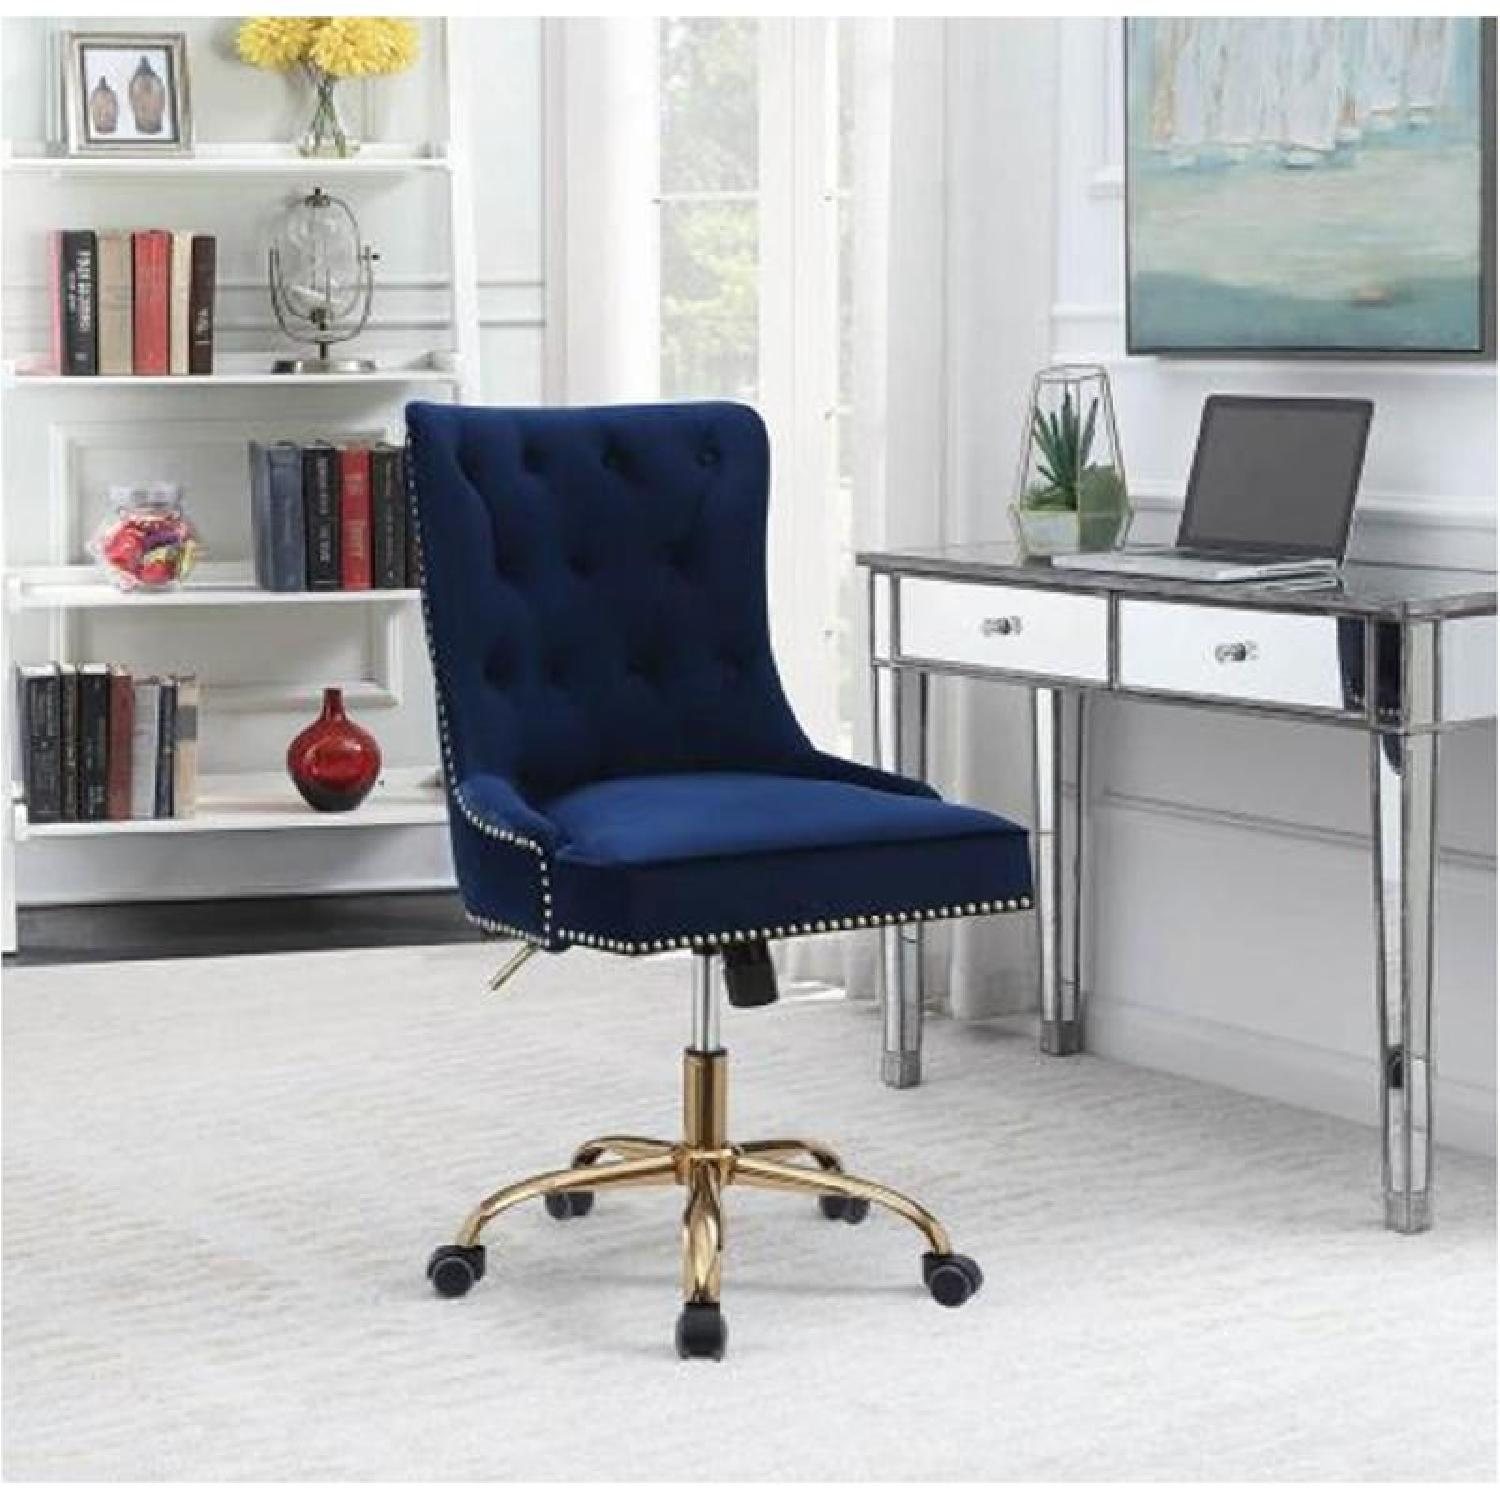 Office Chair w/ Blue Velvet Upholstery & Tufted Buttons - image-2